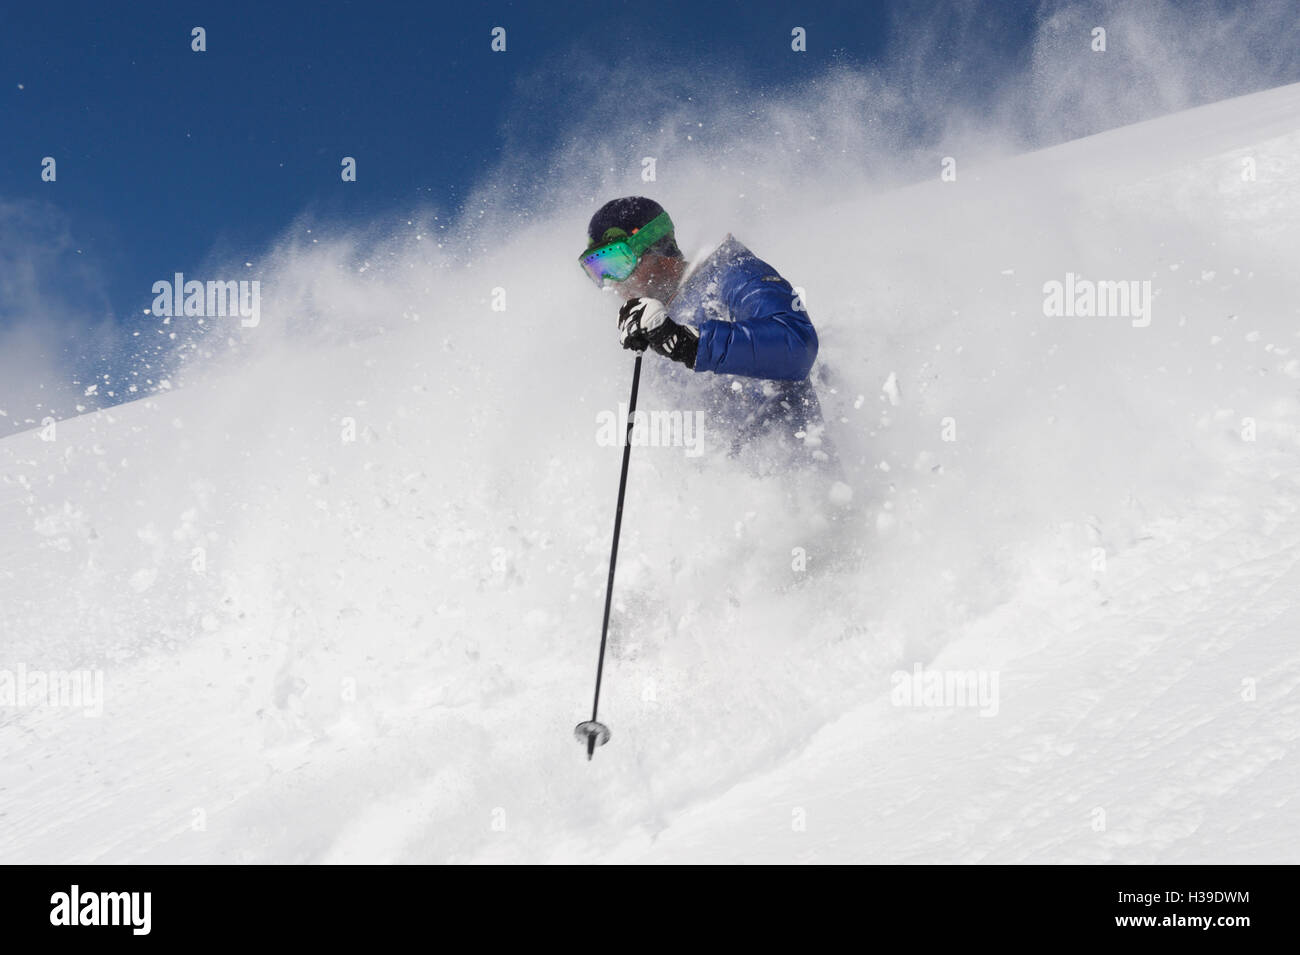 Freeride skiing in deep powder - Stock Image